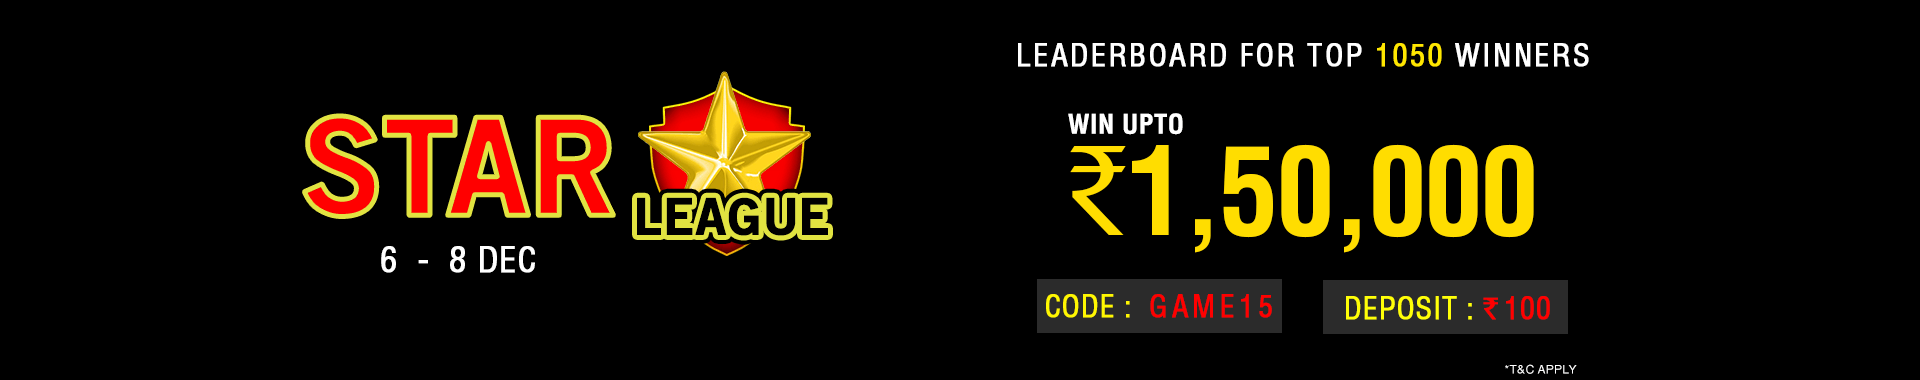 Star League Leaderboard Contest